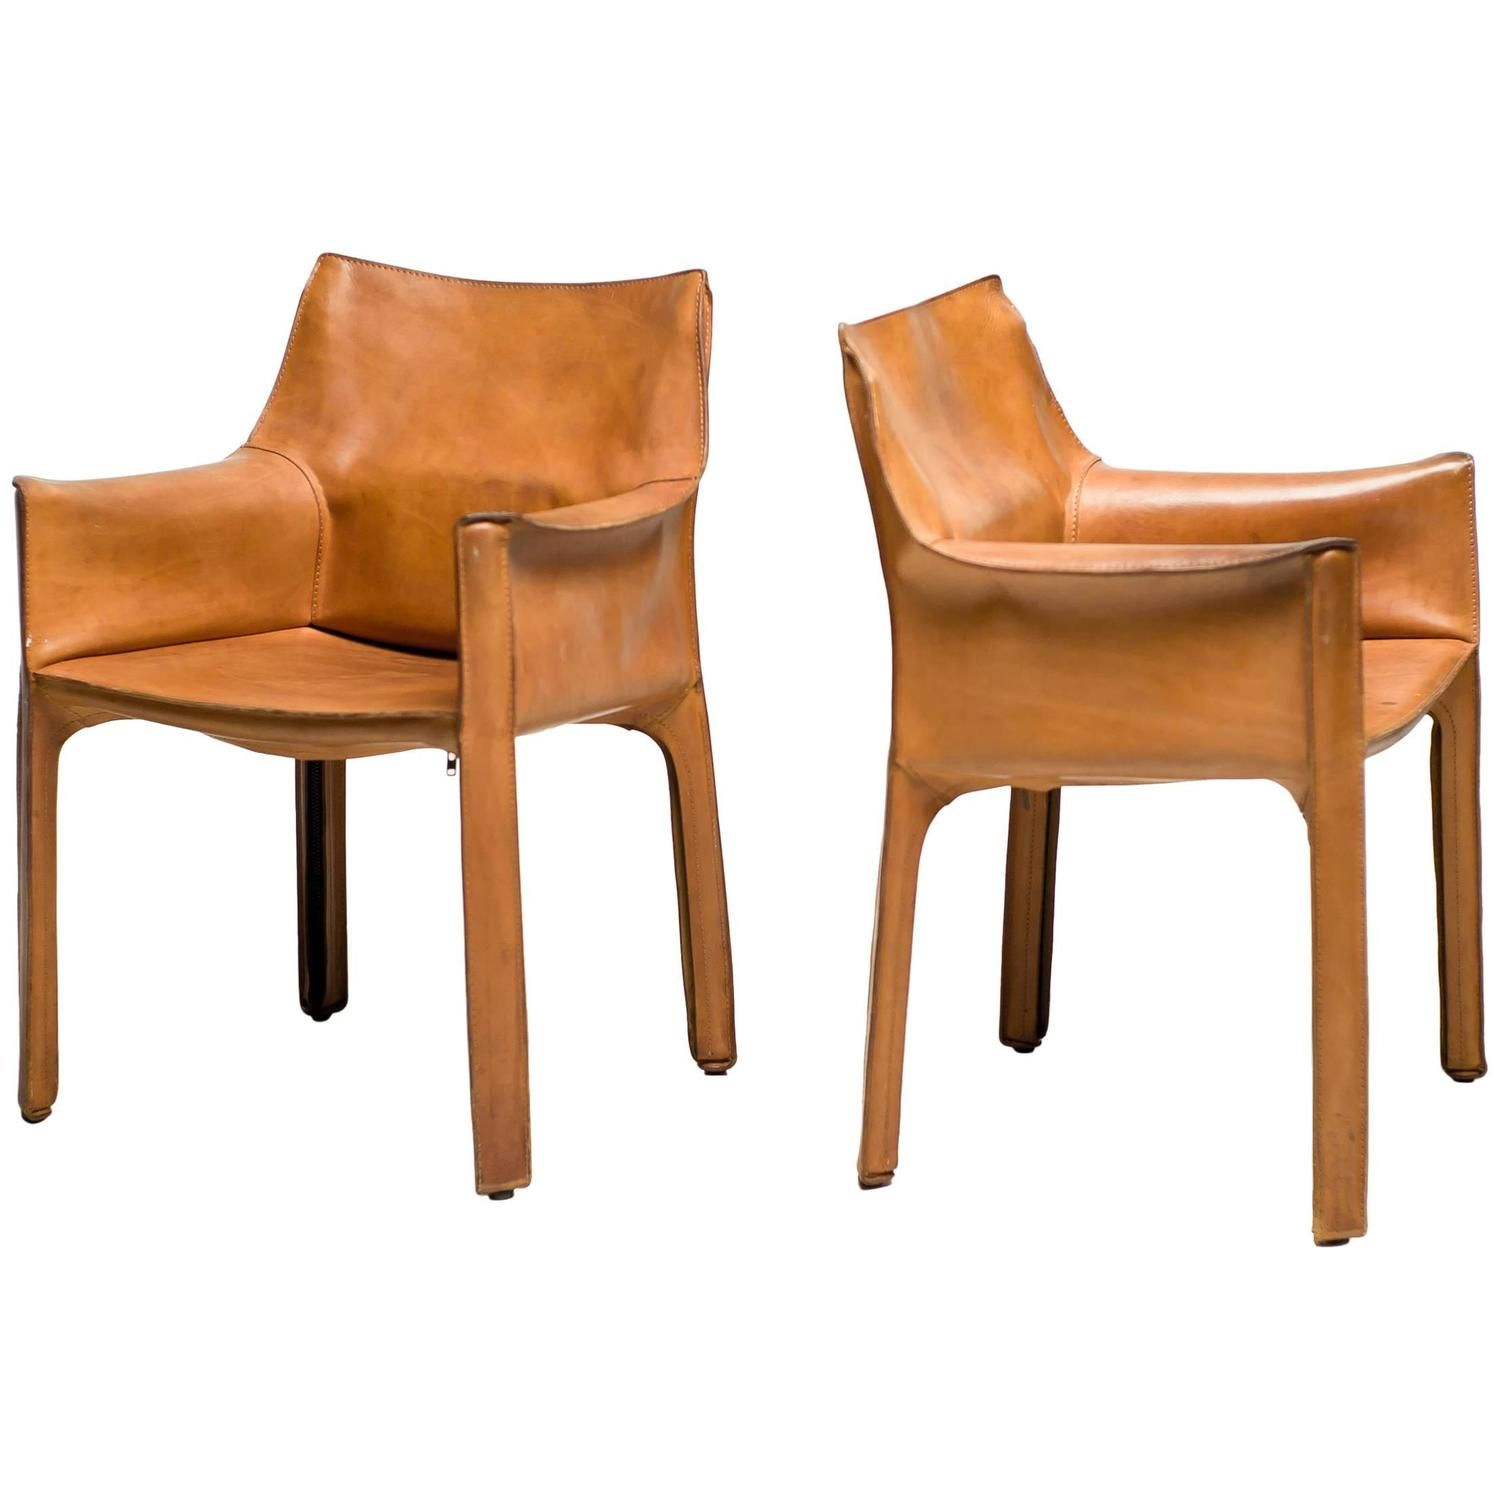 Pair Of Mario Bellini Saddle Leather Cab Chairs Cassina Italy